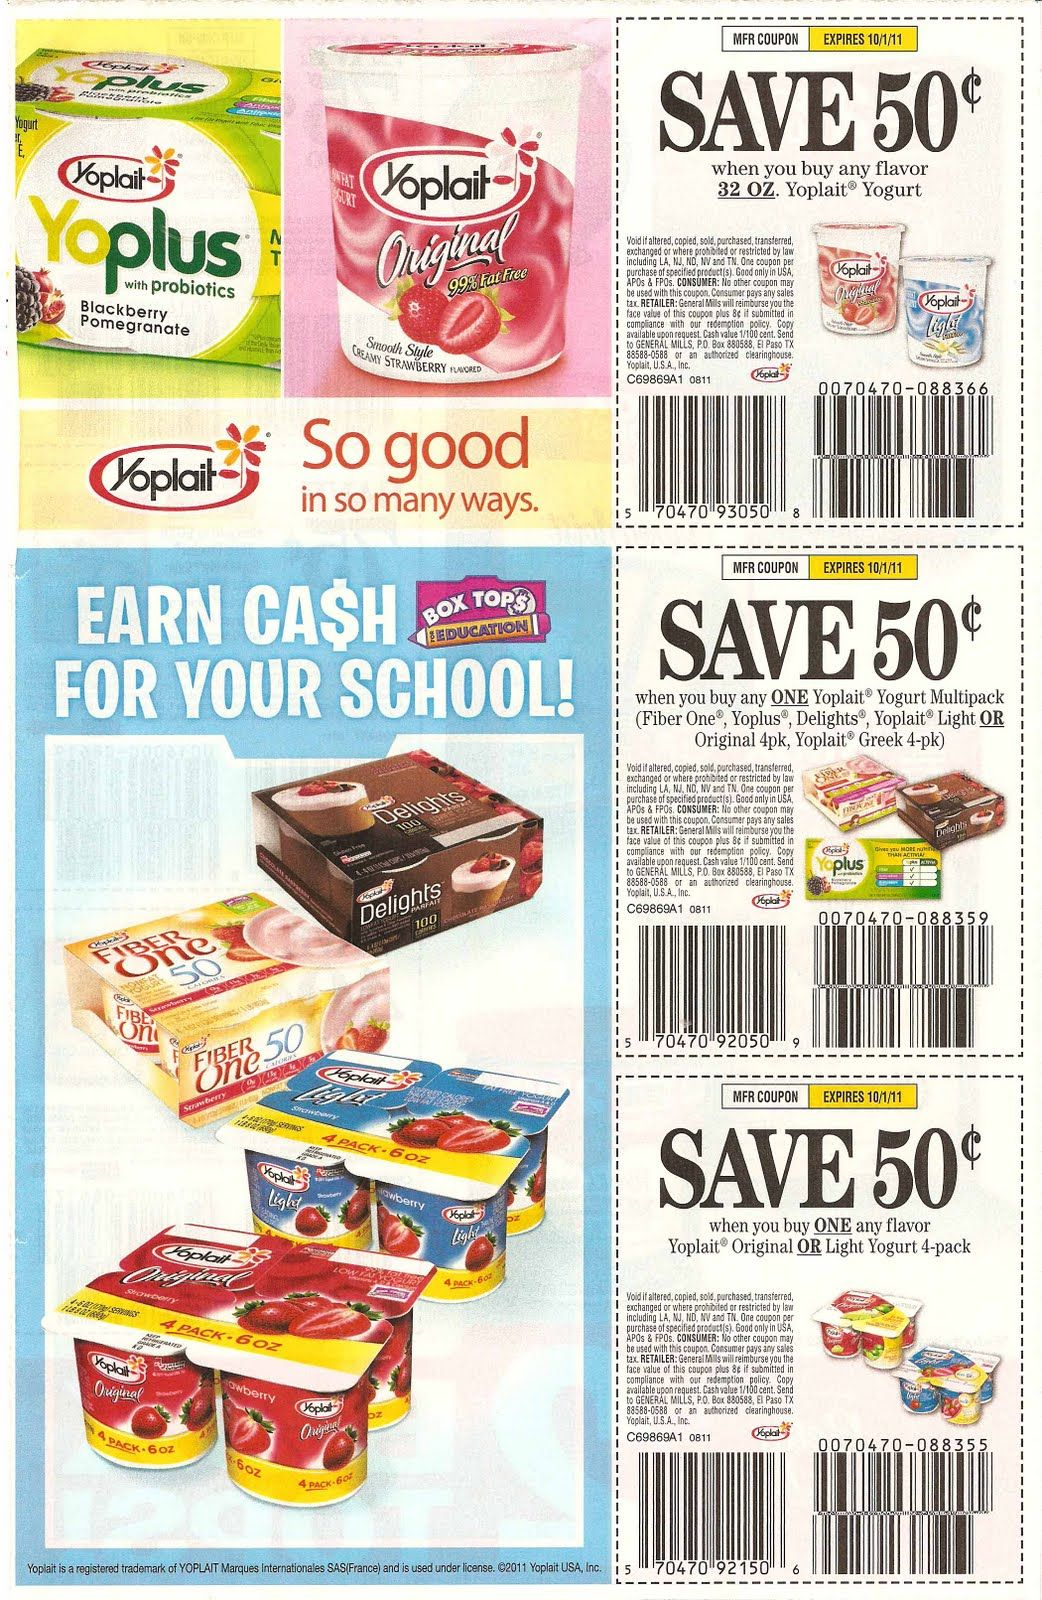 photo regarding Ocean State Job Lot Coupons Printable called Pin upon lead coupon specials